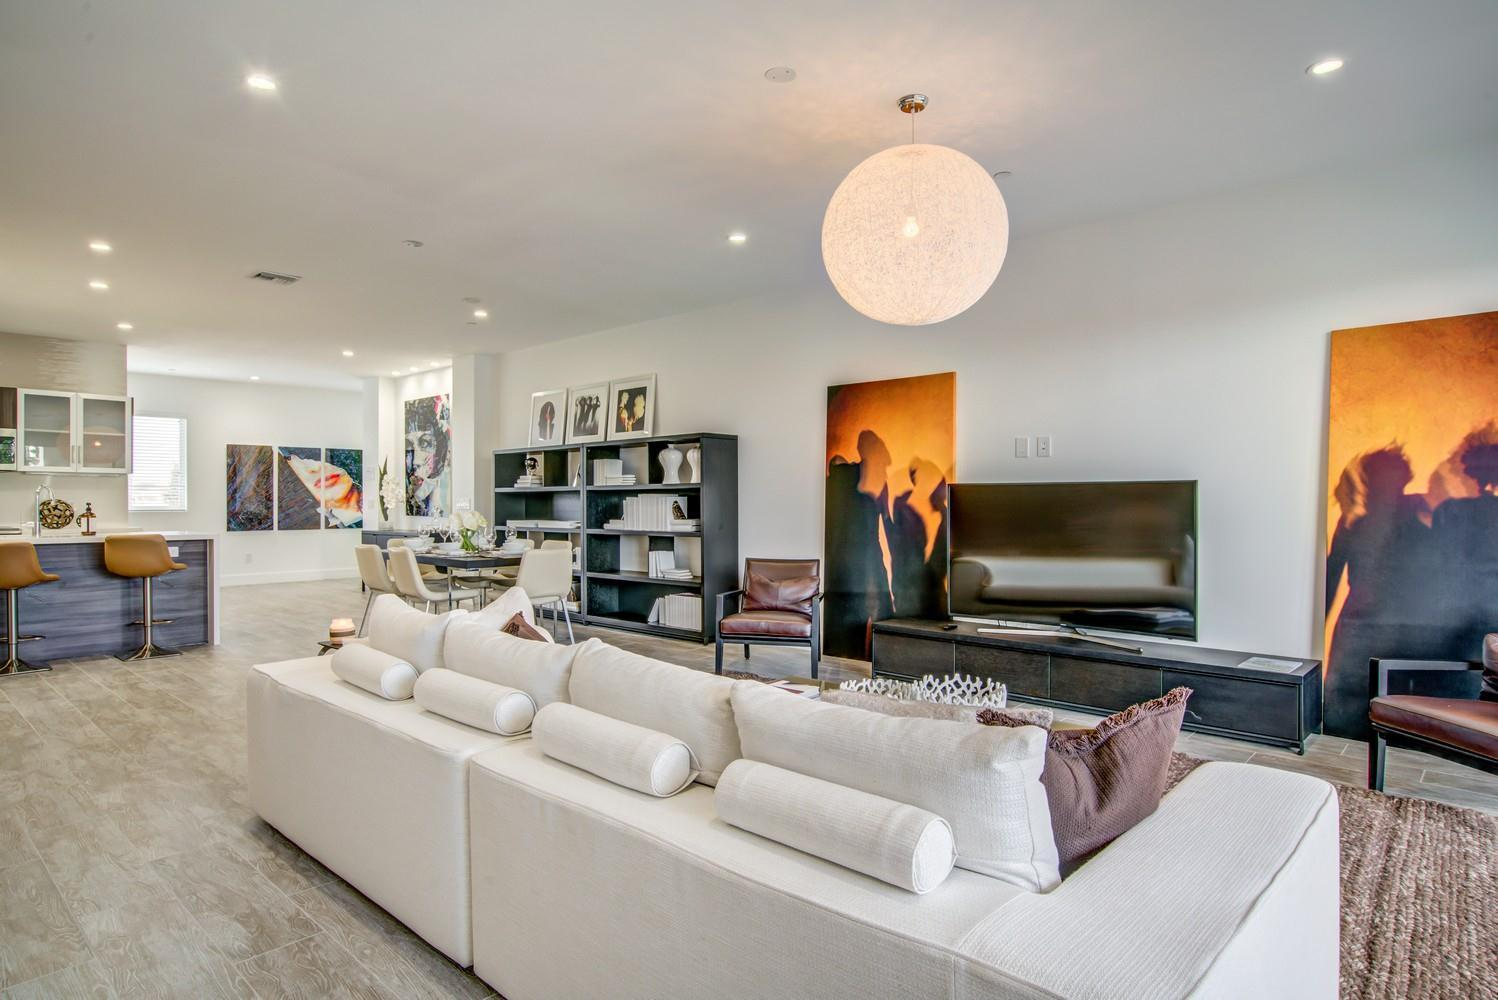 Living Area featured in the Model A - East By Sobel Co in Broward County-Ft. Lauderdale, FL